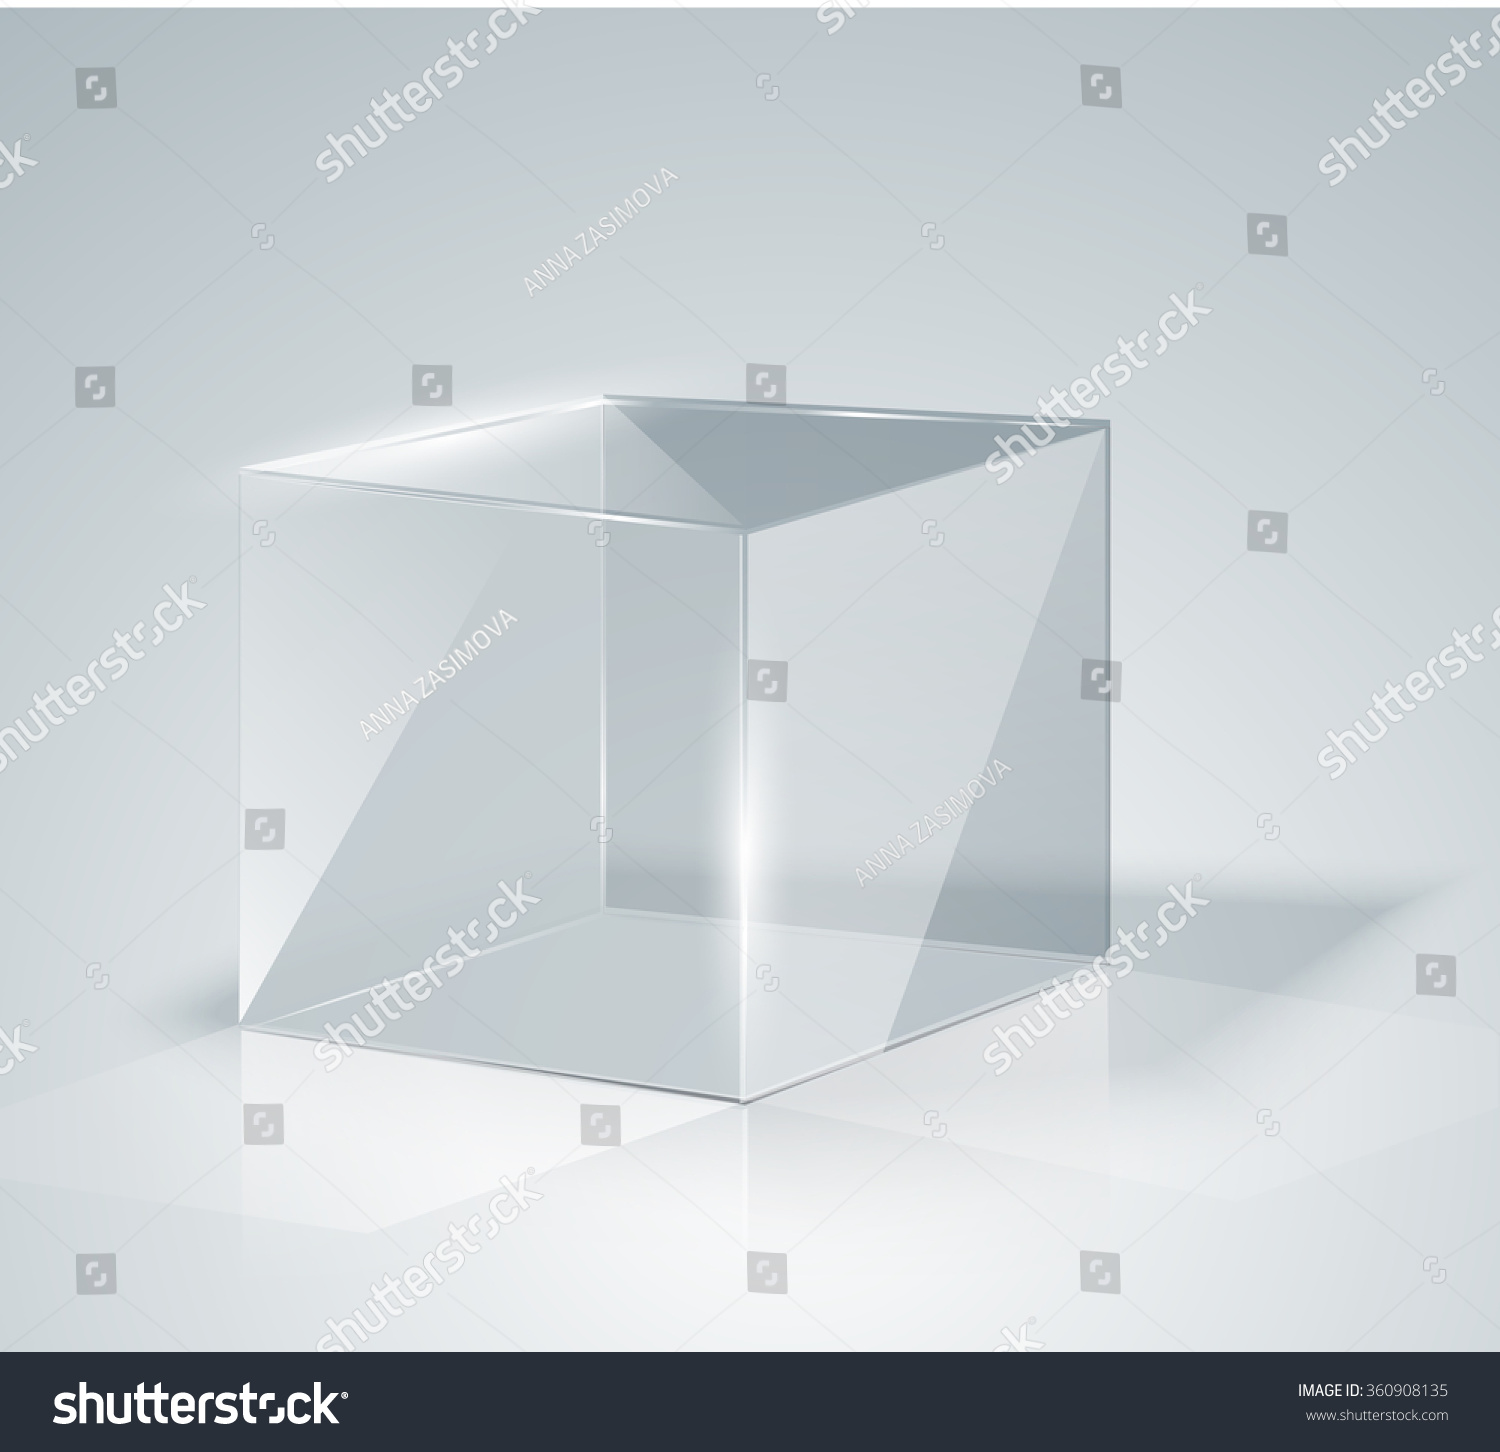 Glass Cube Transparent Cube Isolated Template Stock Vector 360908135 ...